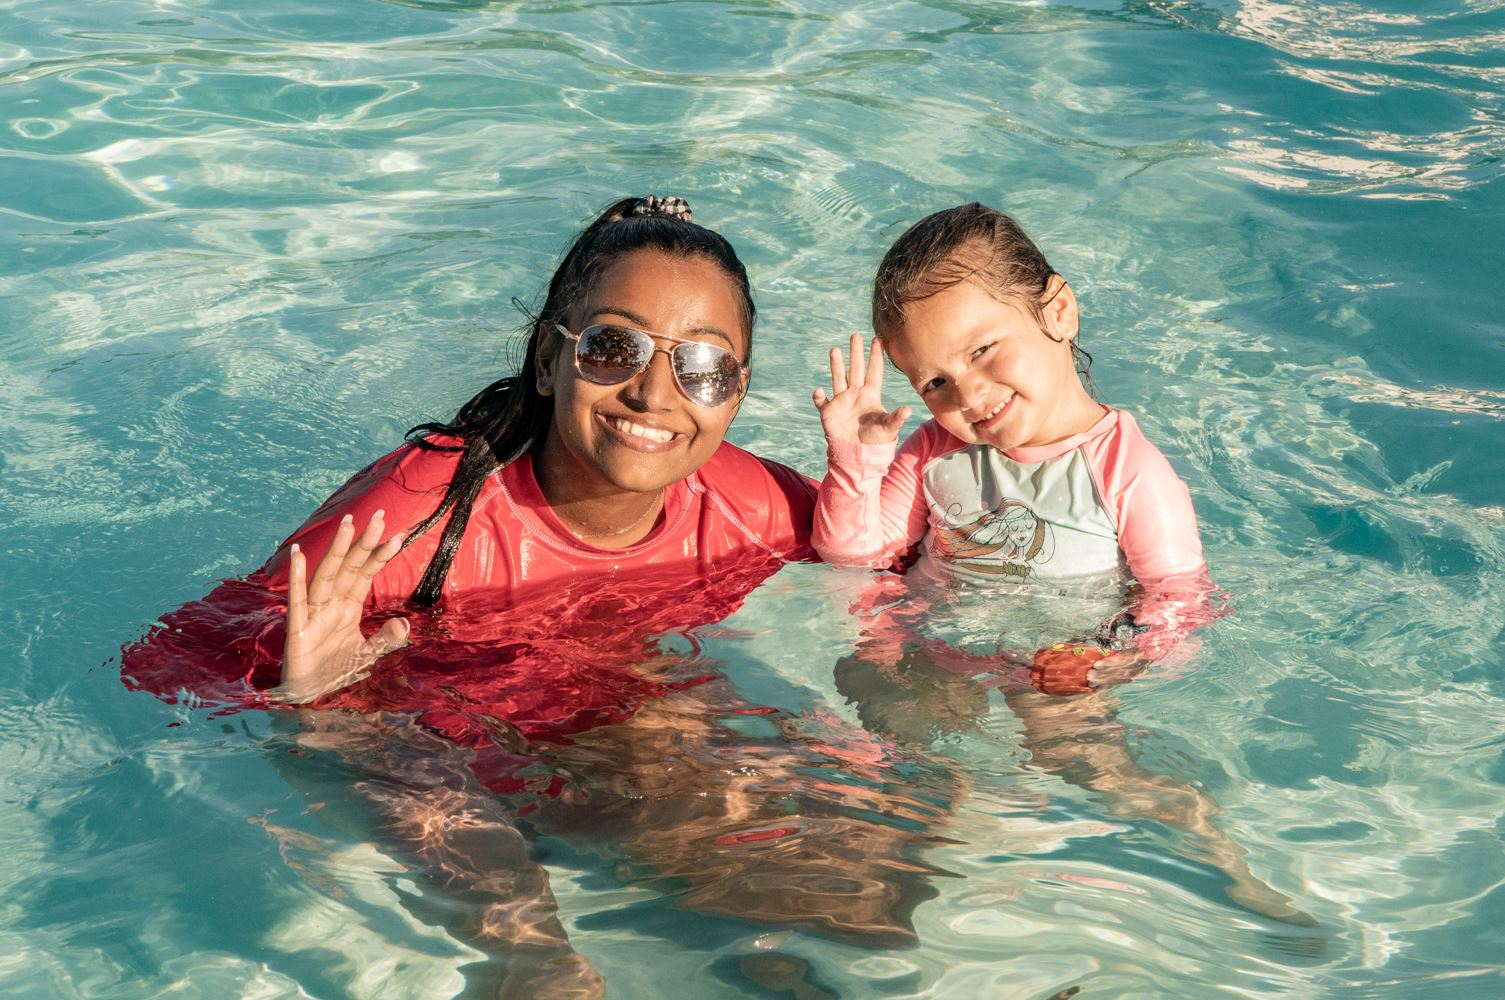 Swim instructor and child during swim lessons